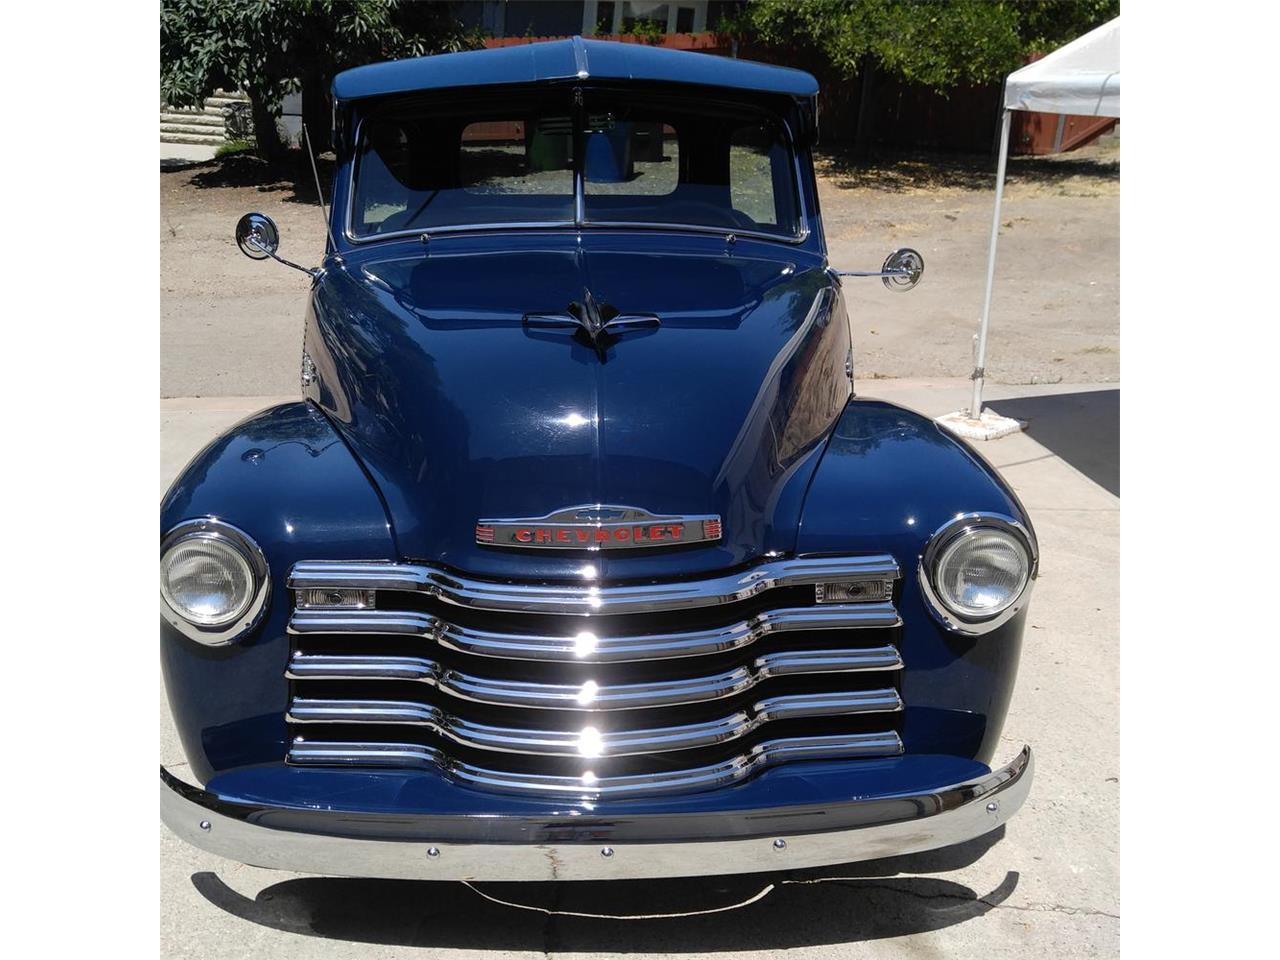 Large Picture of Classic 1950 3100 located in California - $40,000.00 Offered by a Private Seller - LHN3